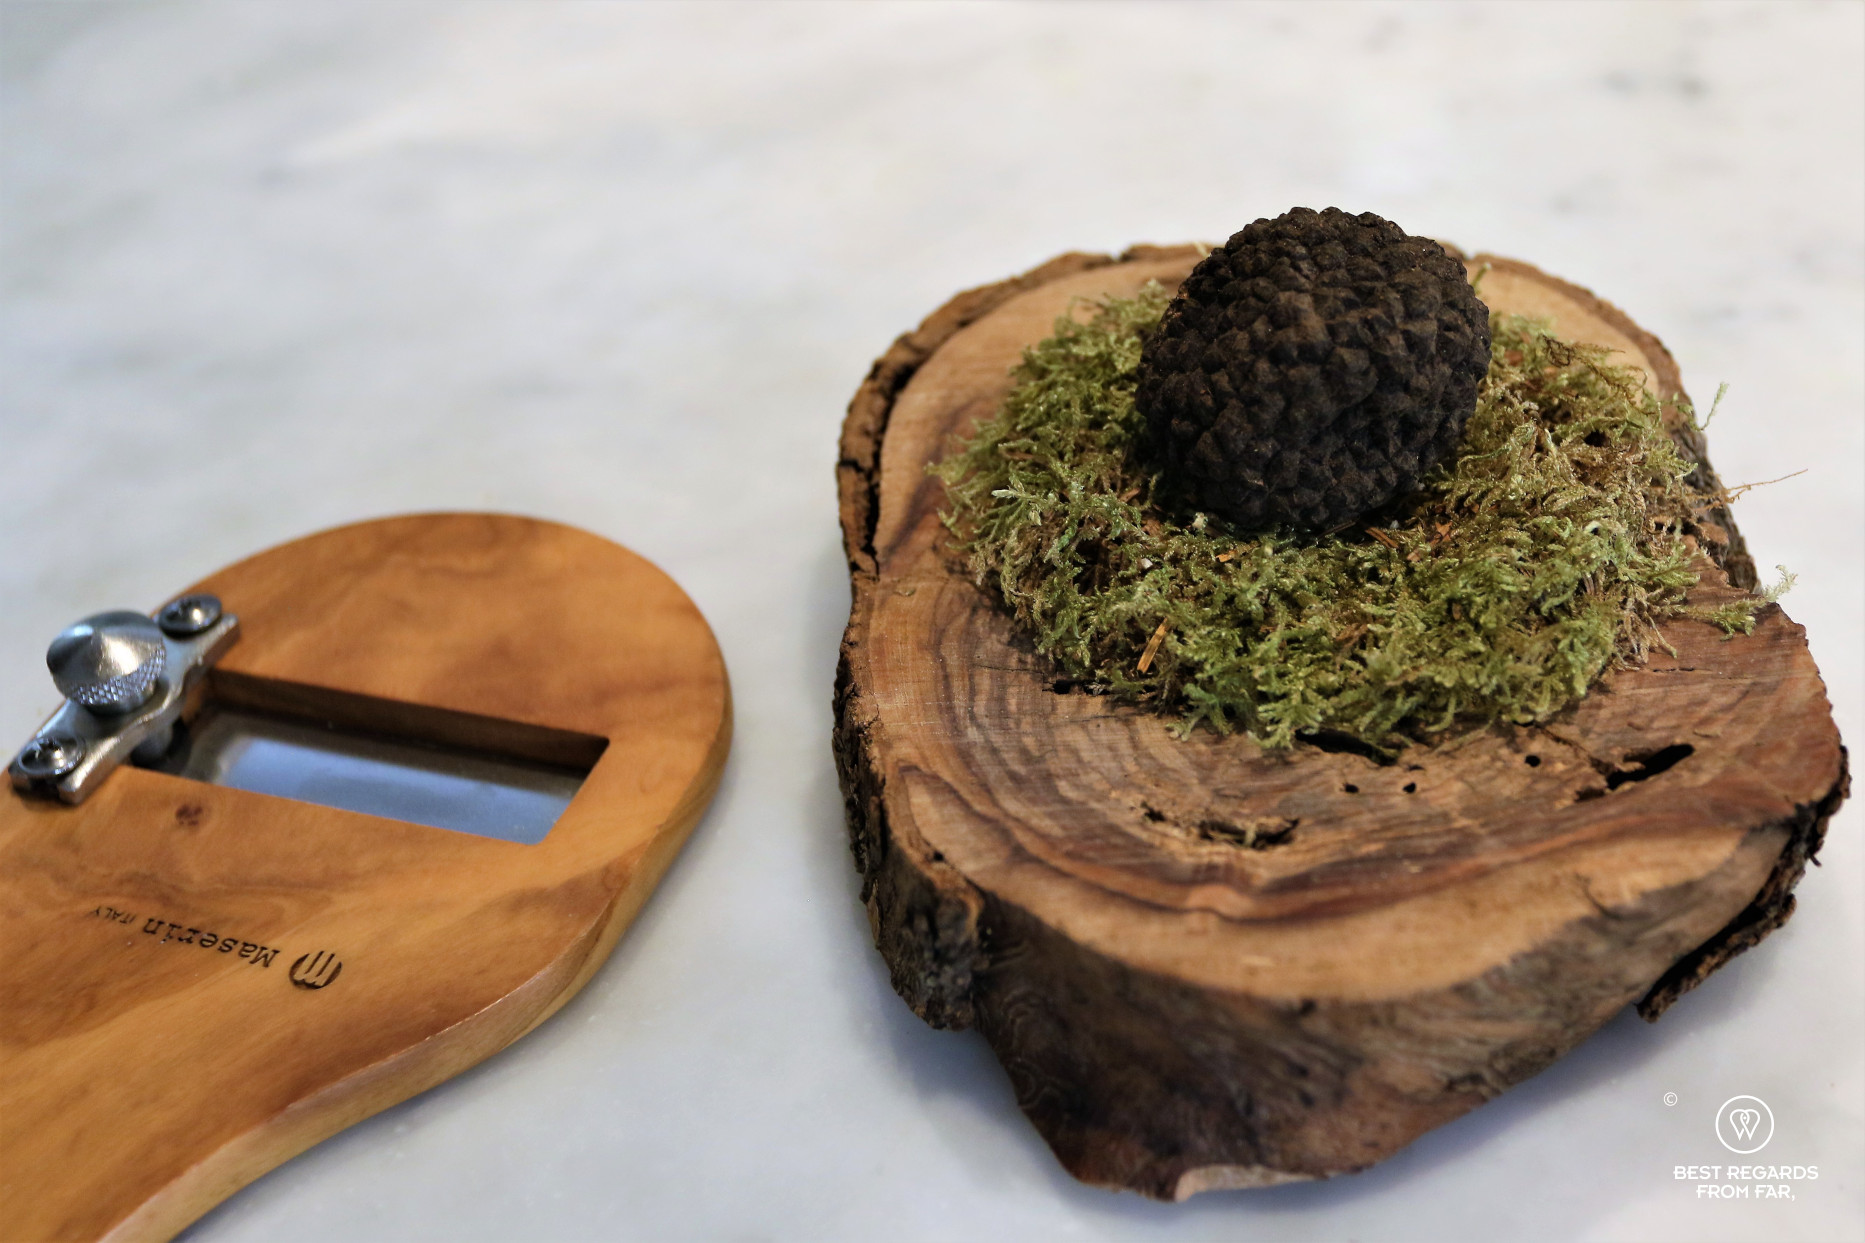 Truffle on green moss on a wooden disk